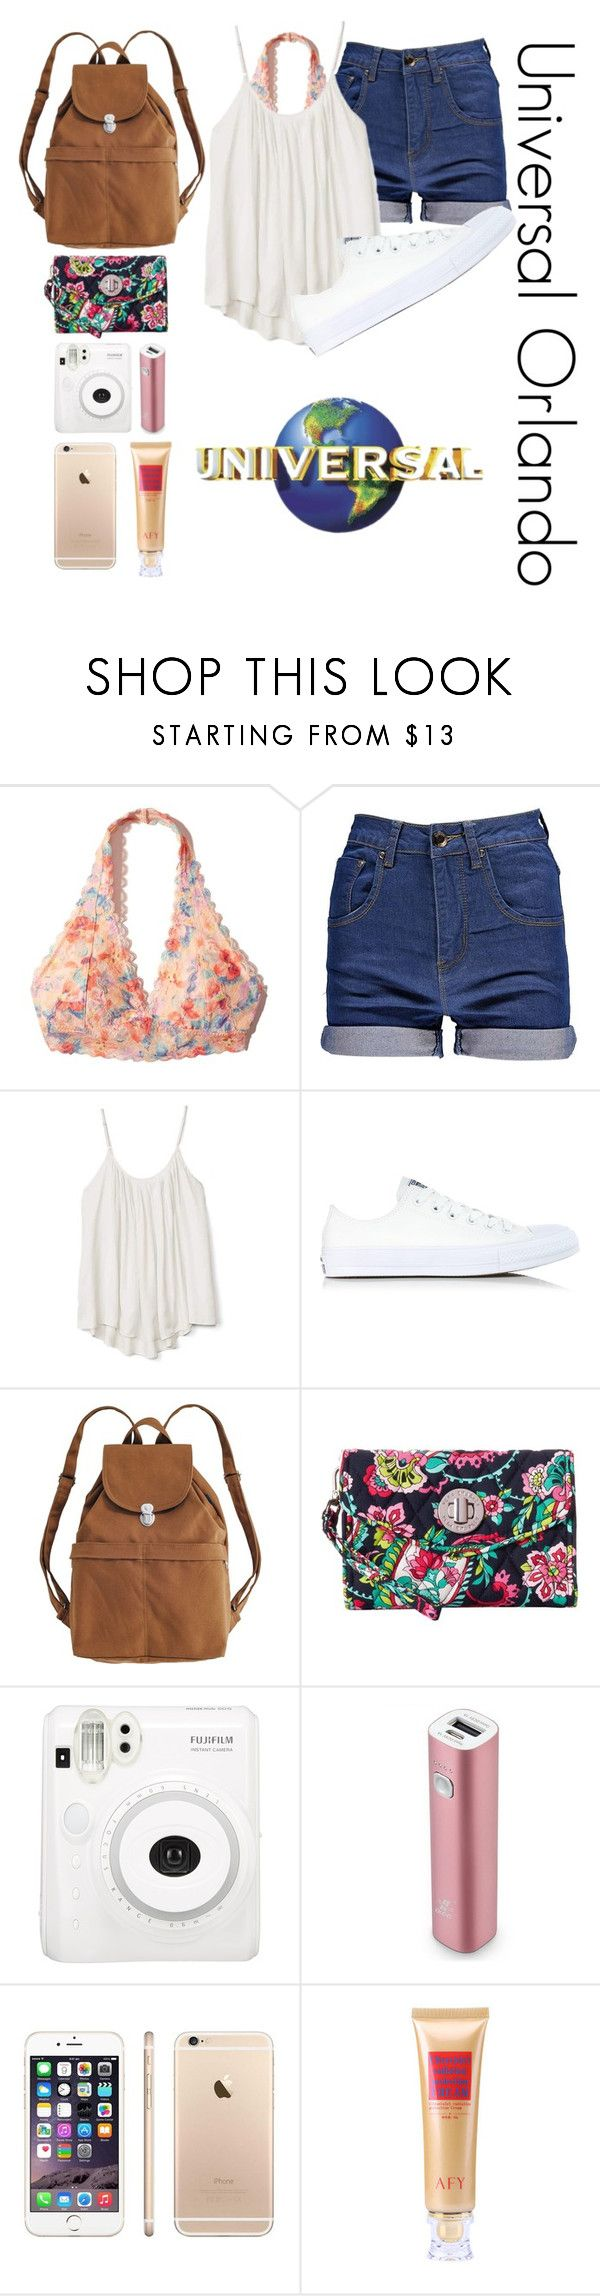 """Universal Studios // Theme Park Essentials "" by sydthekyd01 on Polyvore featuring Hollister Co., Boohoo, Gap, Converse, BAGGU, Universal Studios, Vera Bradley and Samsung"